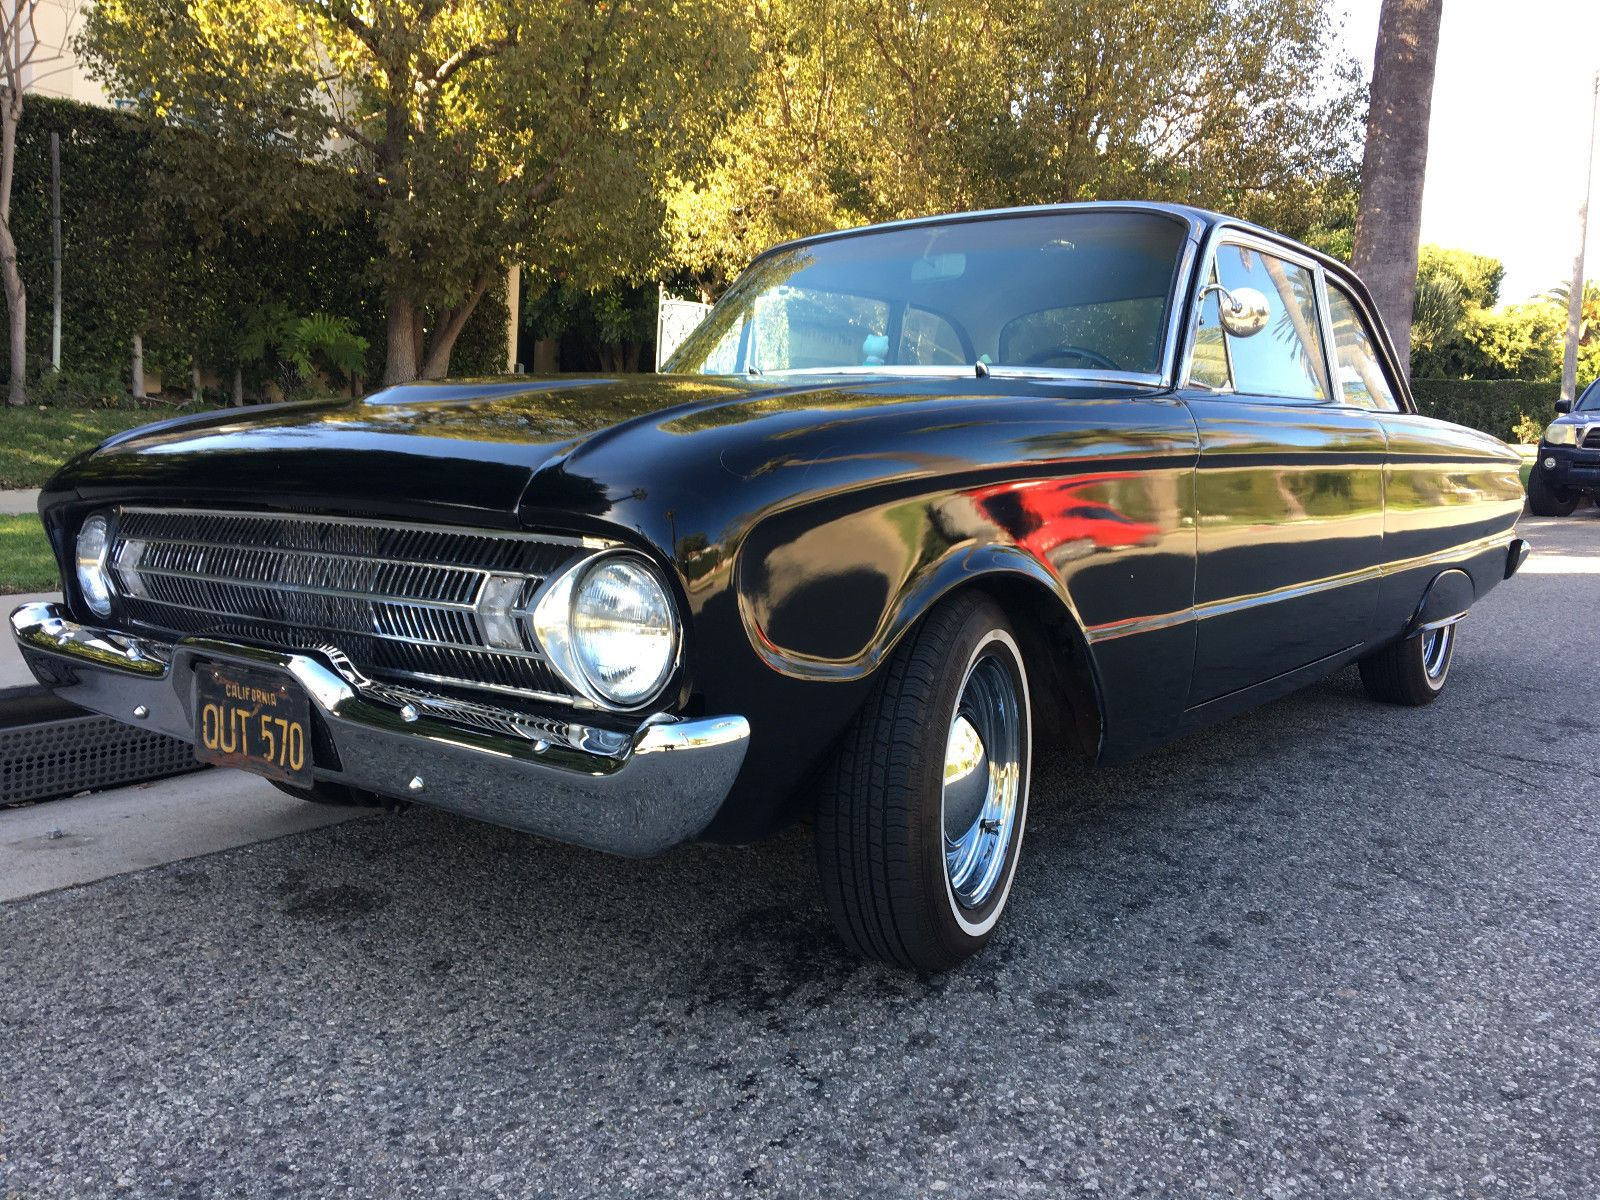 eBay: 1961 Ford Falcon V8 Falcon Awesome Falcon Custom V8 Hot Rod ...